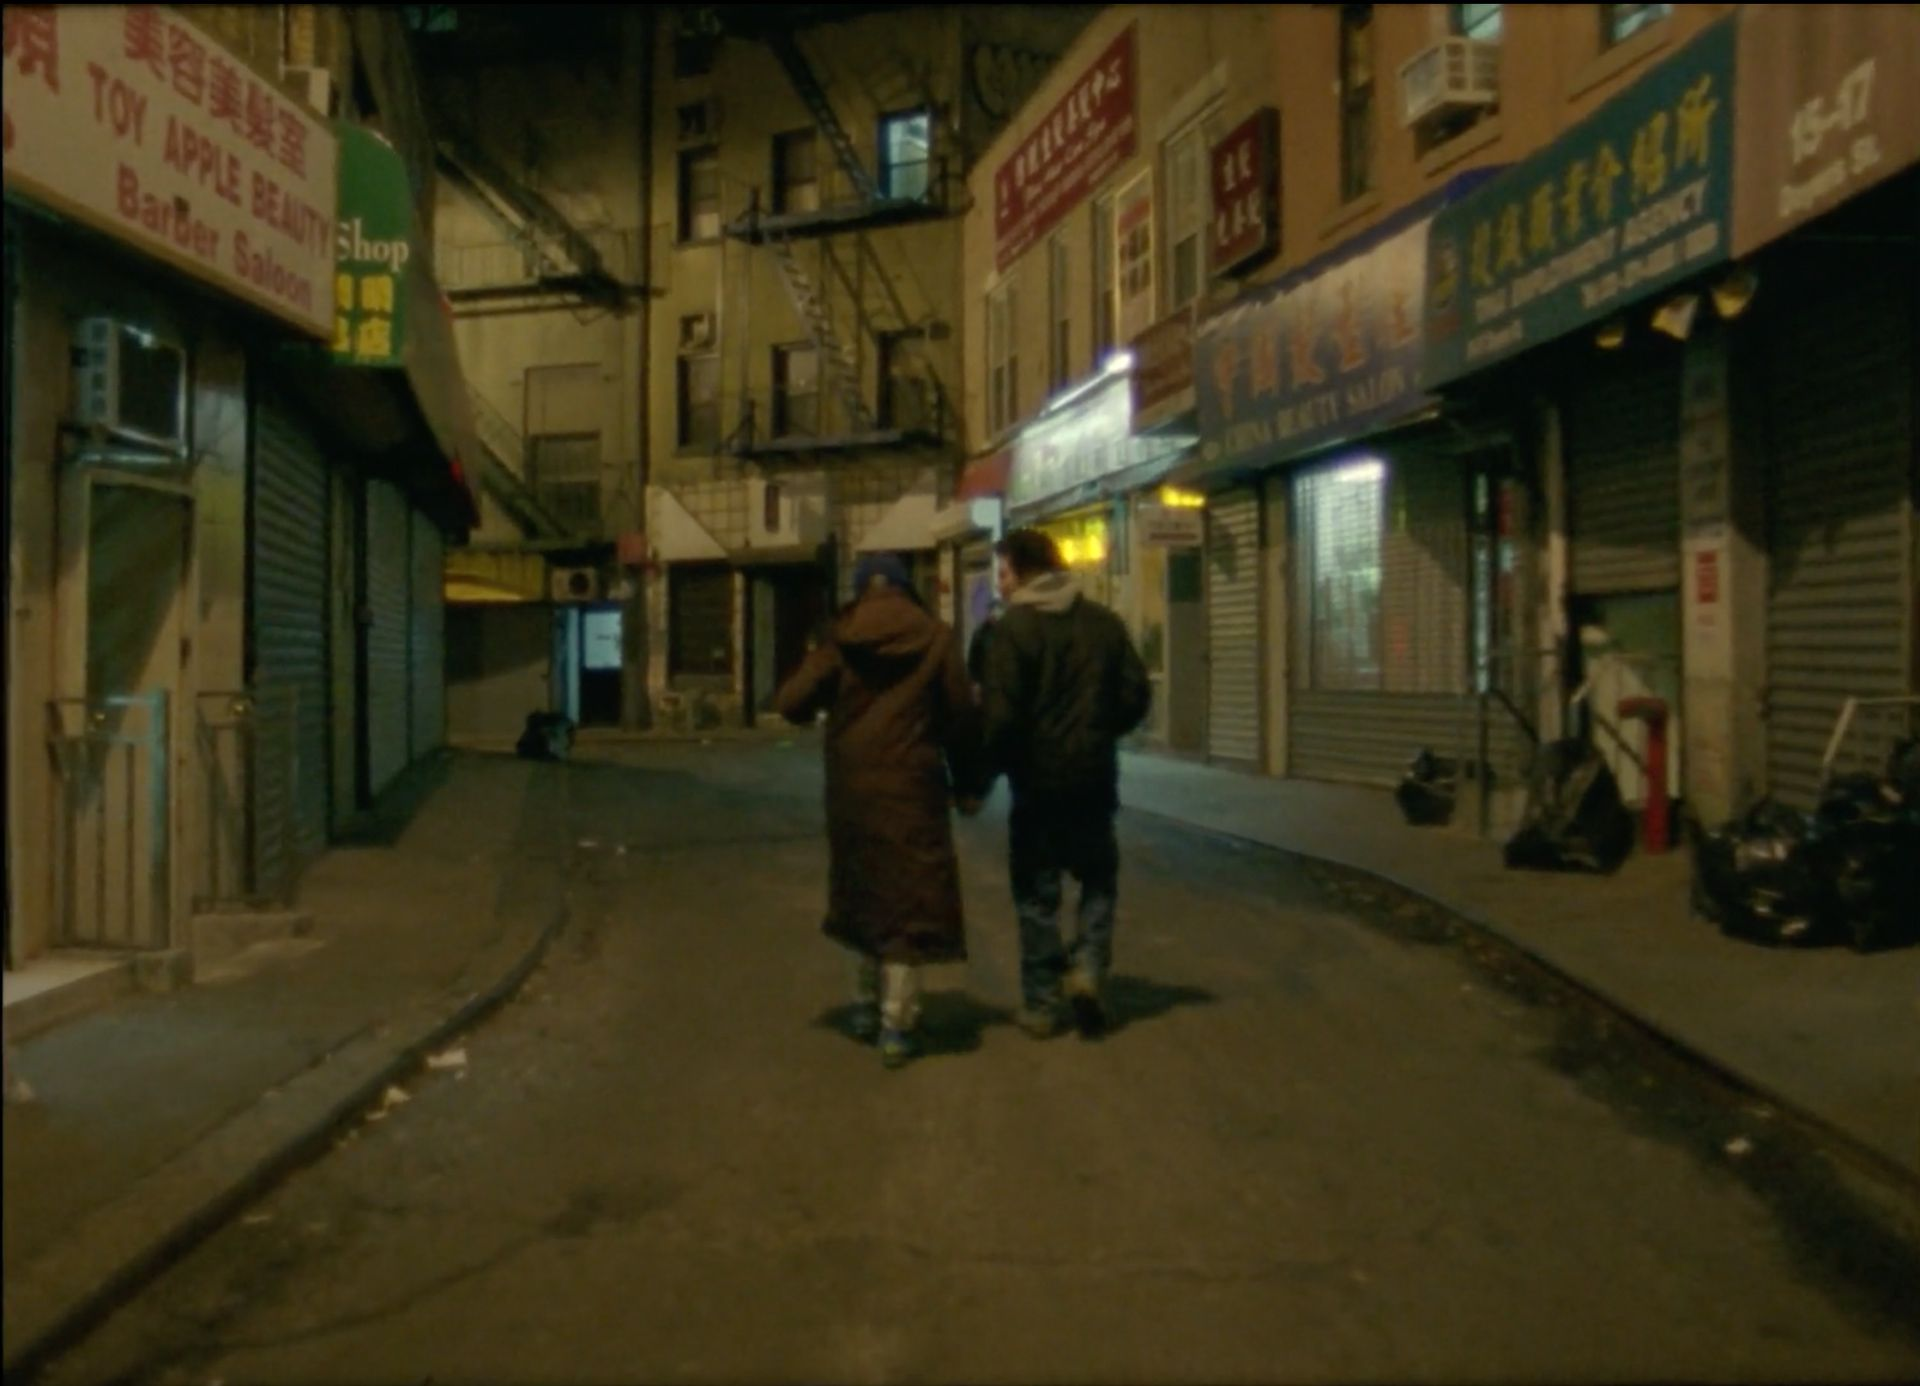 still from music video of Canal by Ratking